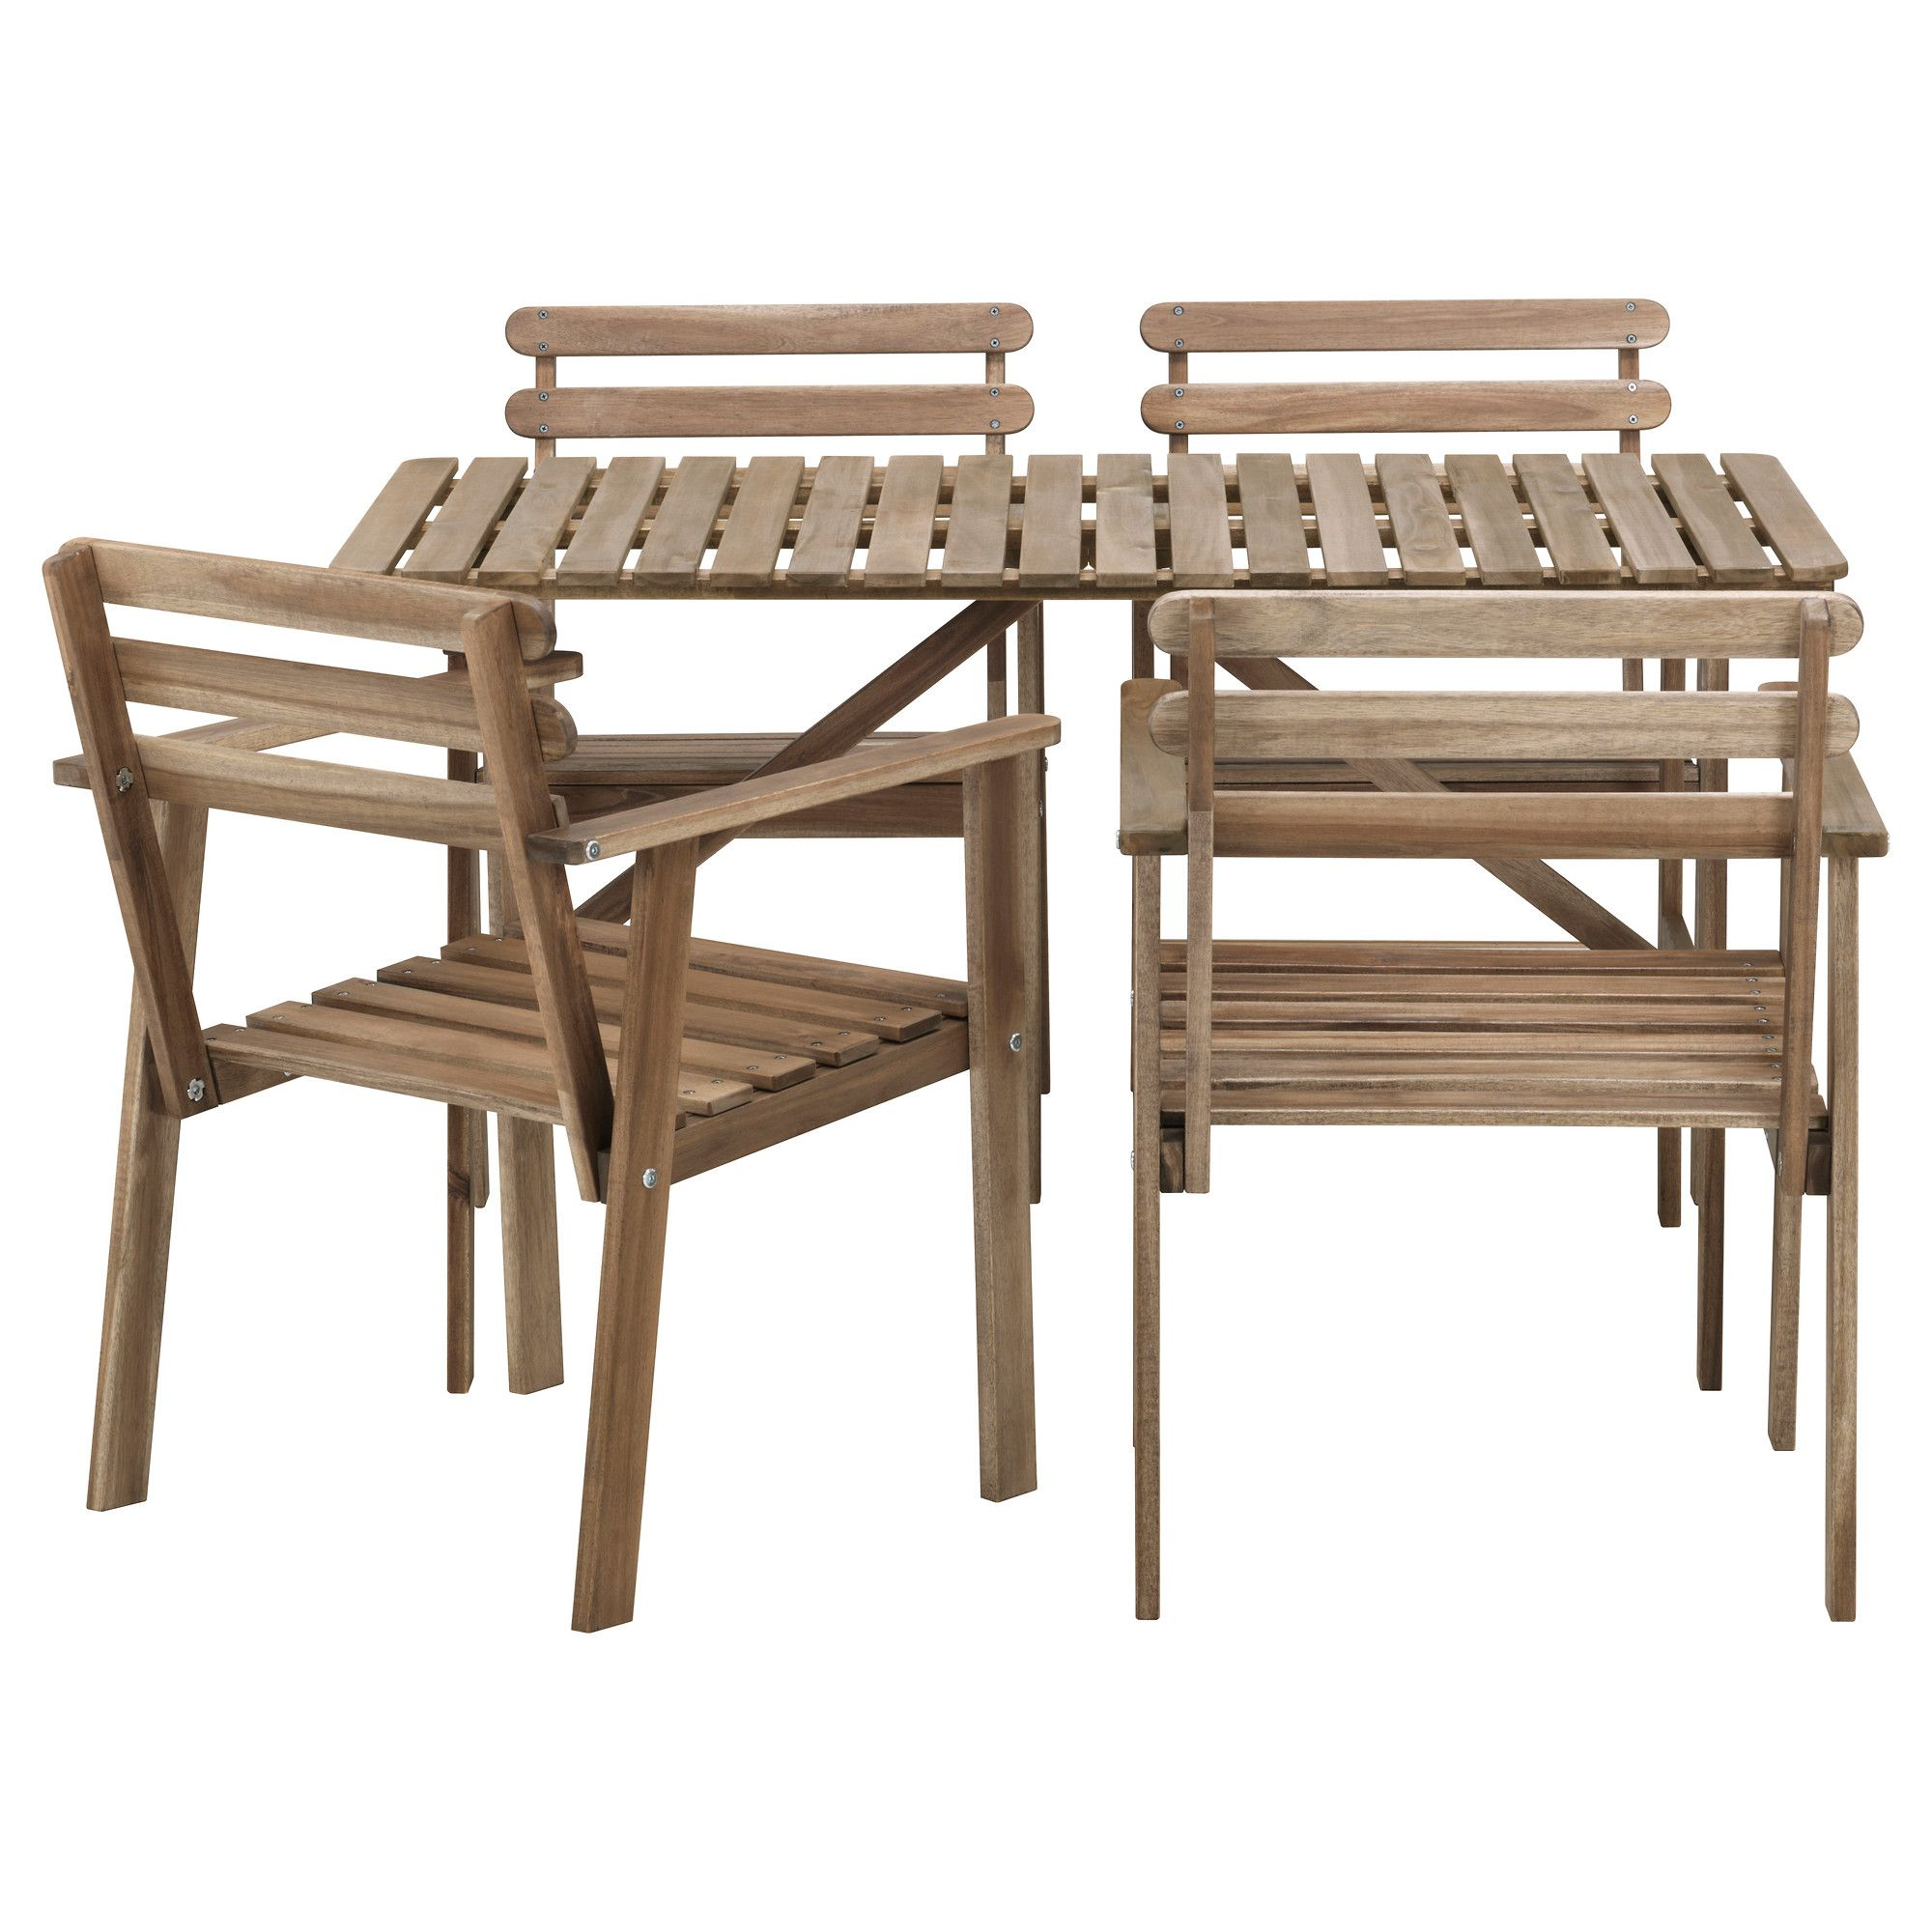 Table jardin ikea - Ikea table jardin ...